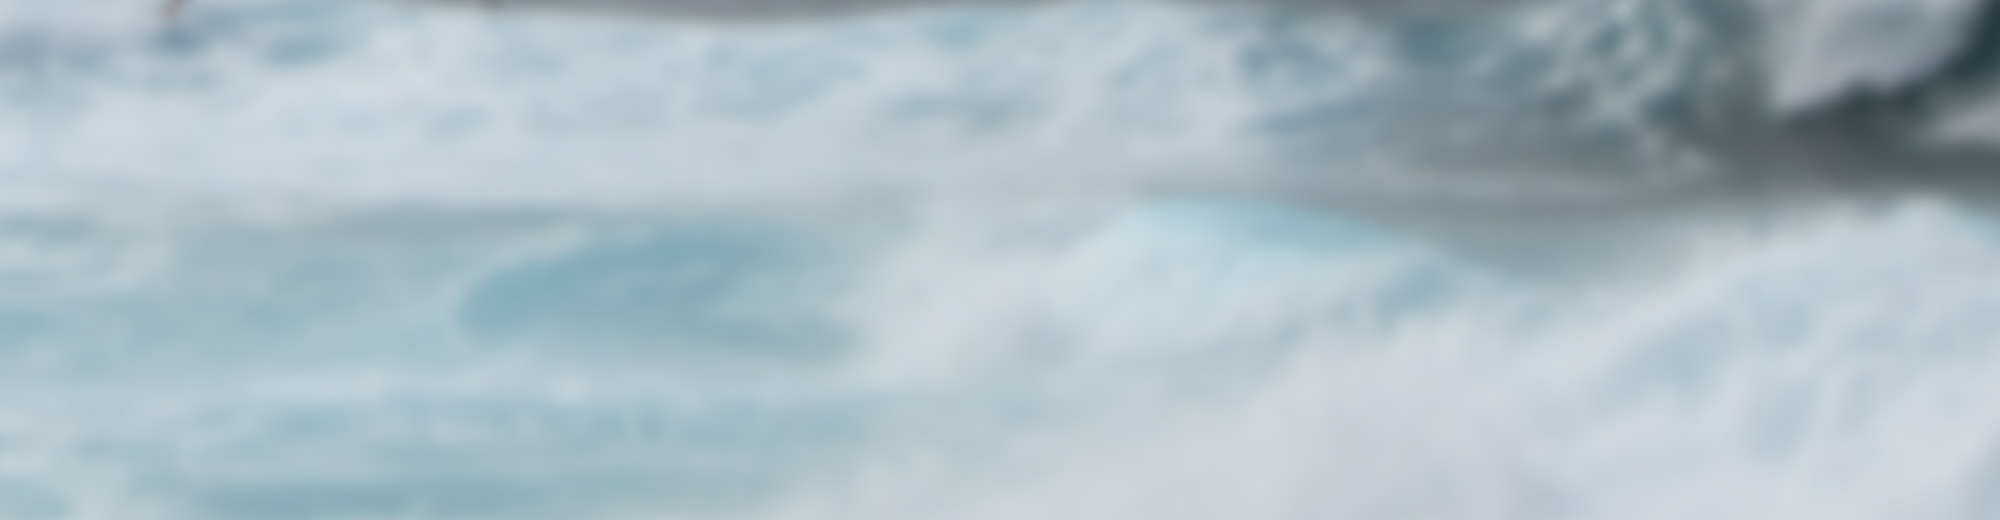 ocean_background-banner